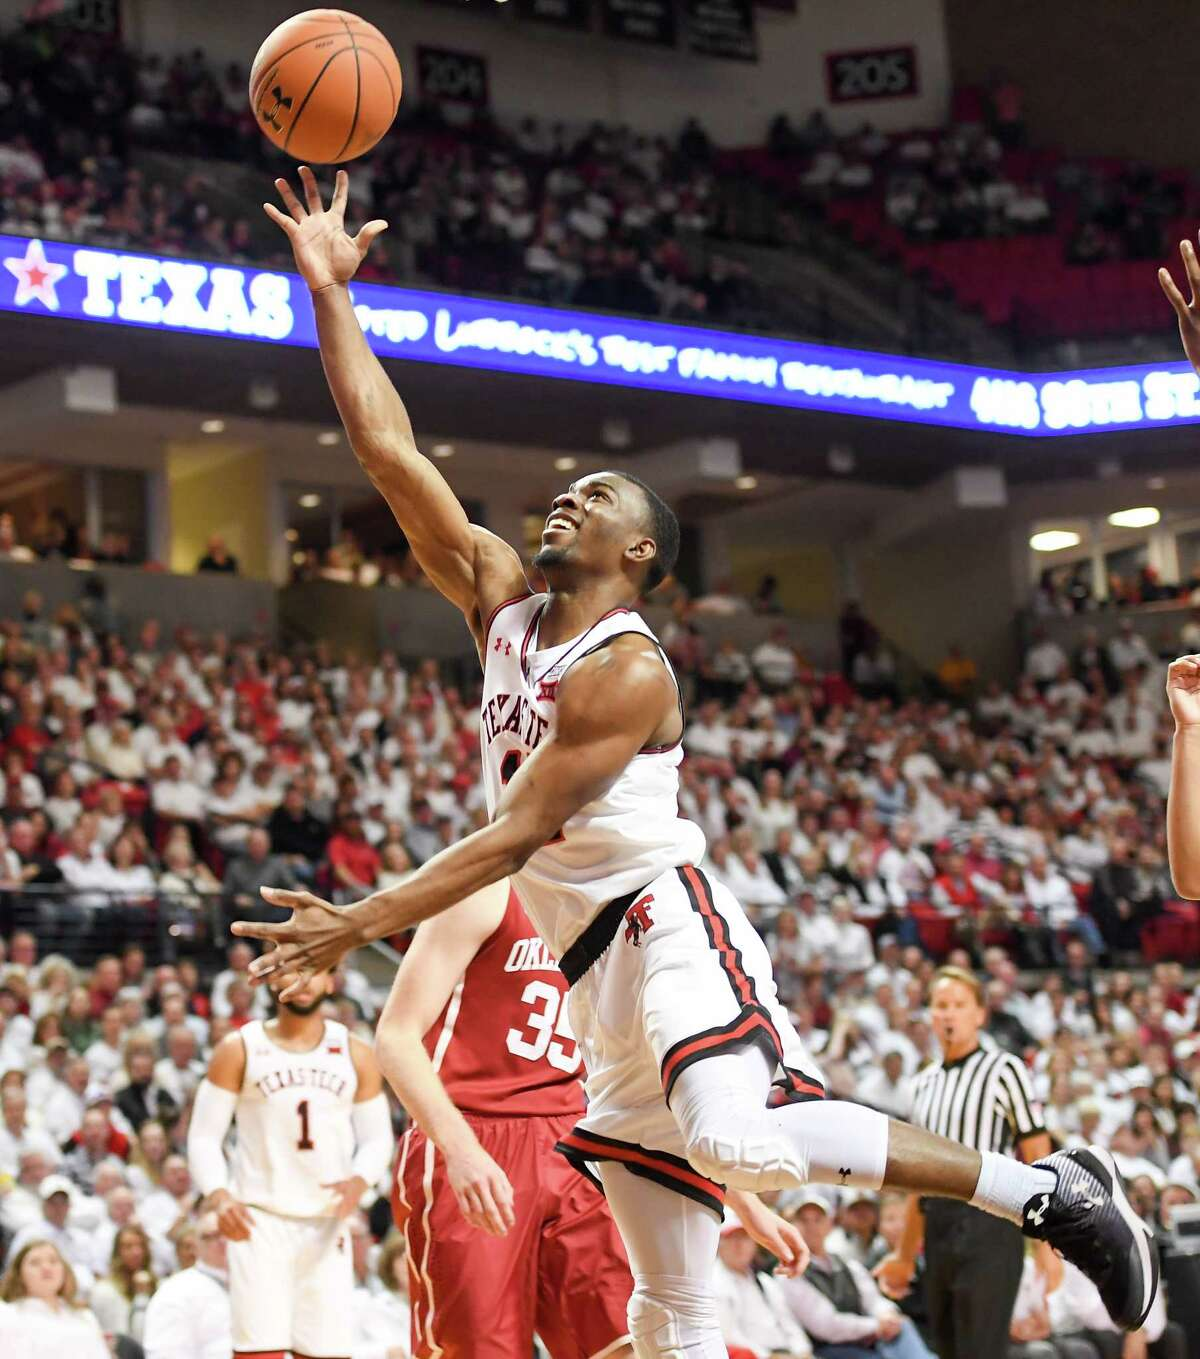 LUBBOCK, TX - FEBRUARY 13: Keenan Evans #12 of the Texas Tech Red Raiders shoots the ball during the first half of the game against the Oklahoma Sooners on February 13, 2018 at United Supermarket Arena in Lubbock, Texas. (Photo by John Weast/Getty Images)